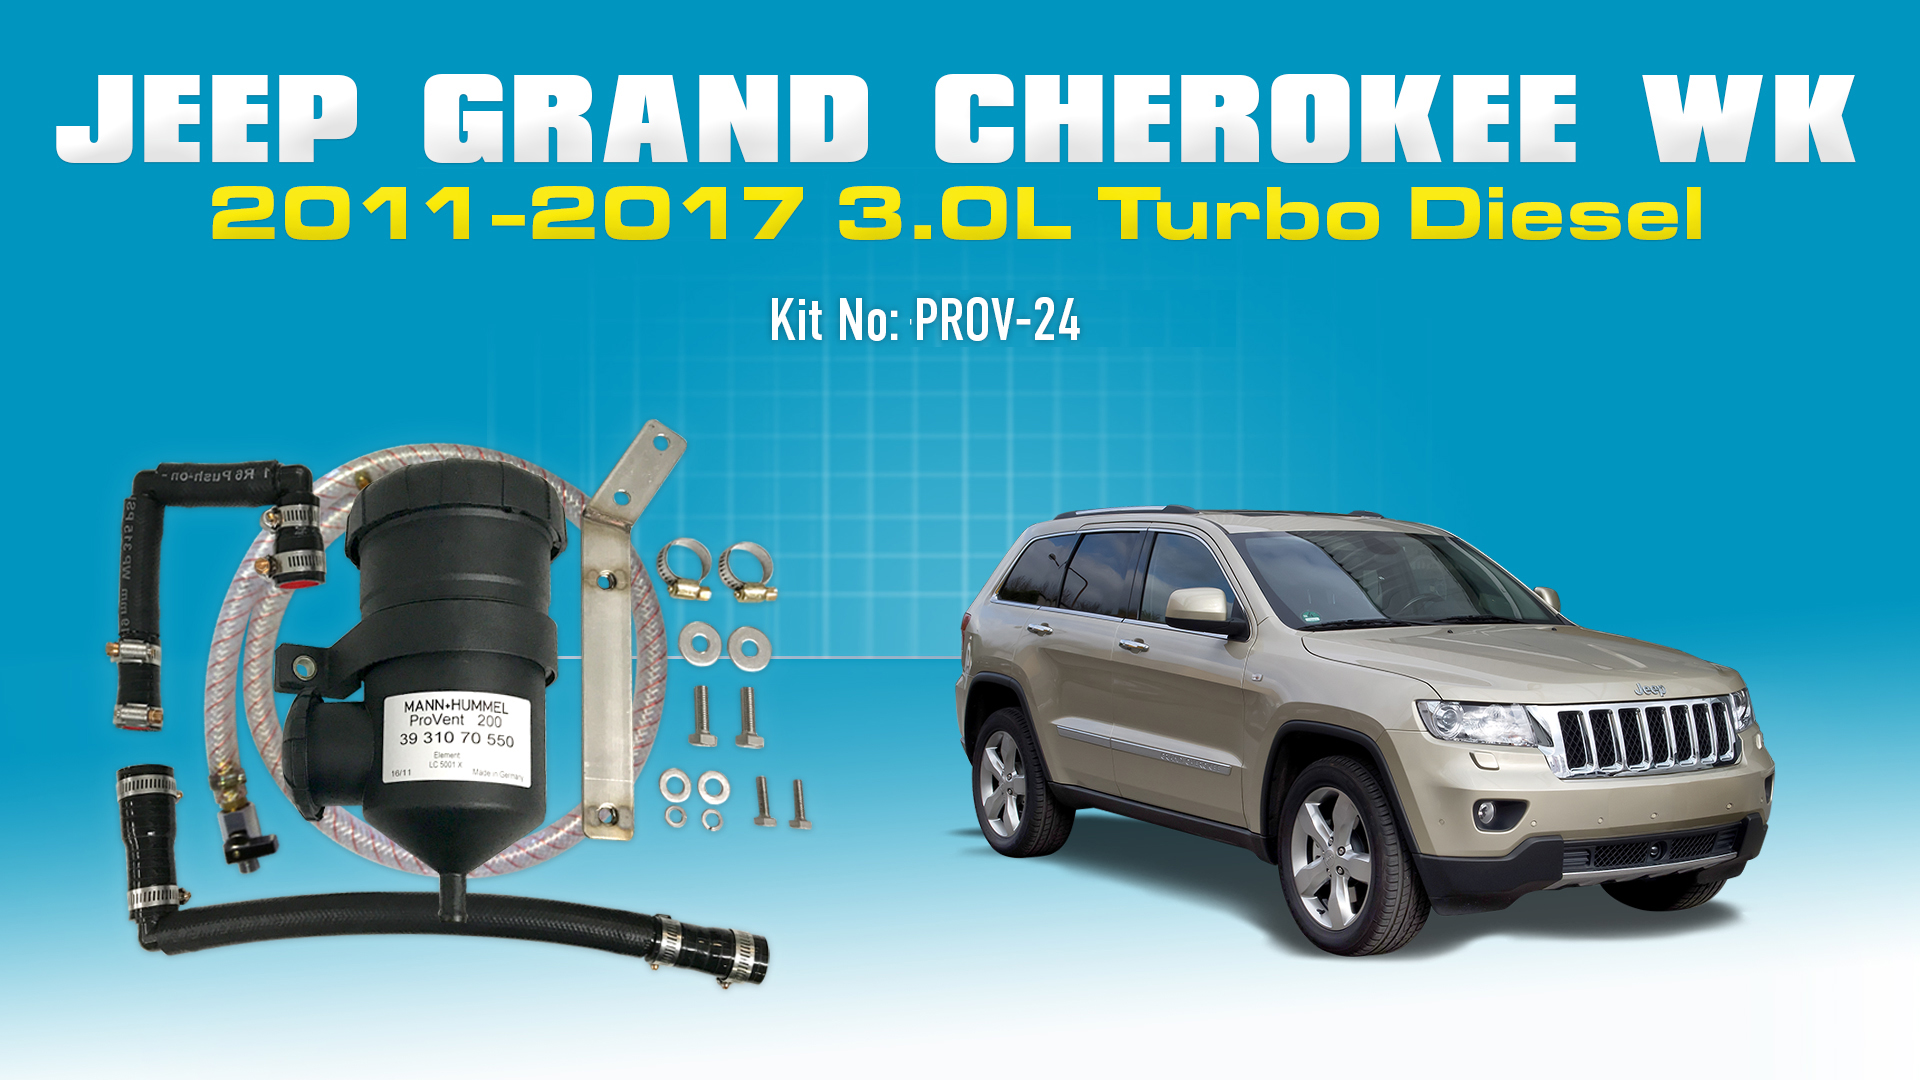 Jeep Grand Cherokee 2011 2017 30l Wk Turbo Diesel Provent Catch Sport Fuel Filter Can Kit Online Store